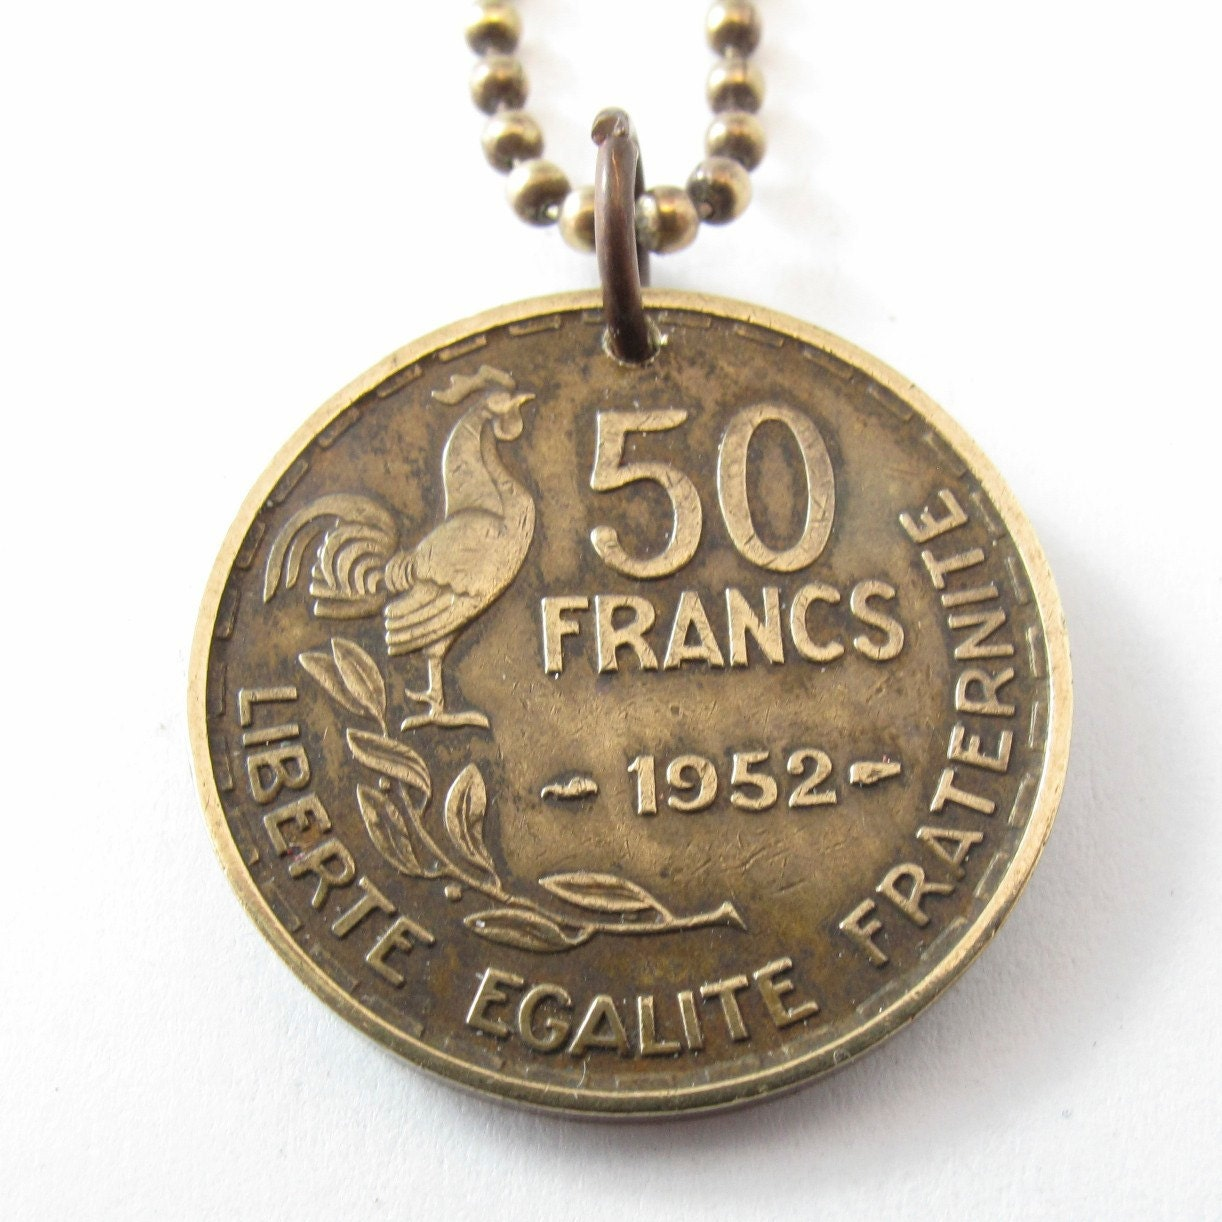 FRANCE french COIN NECKLACE 50 Franc Liberate Egalite Fraternite rooster pendant. brass chain .choose year . 951 1952 1953 No.00903 - PartsForYou